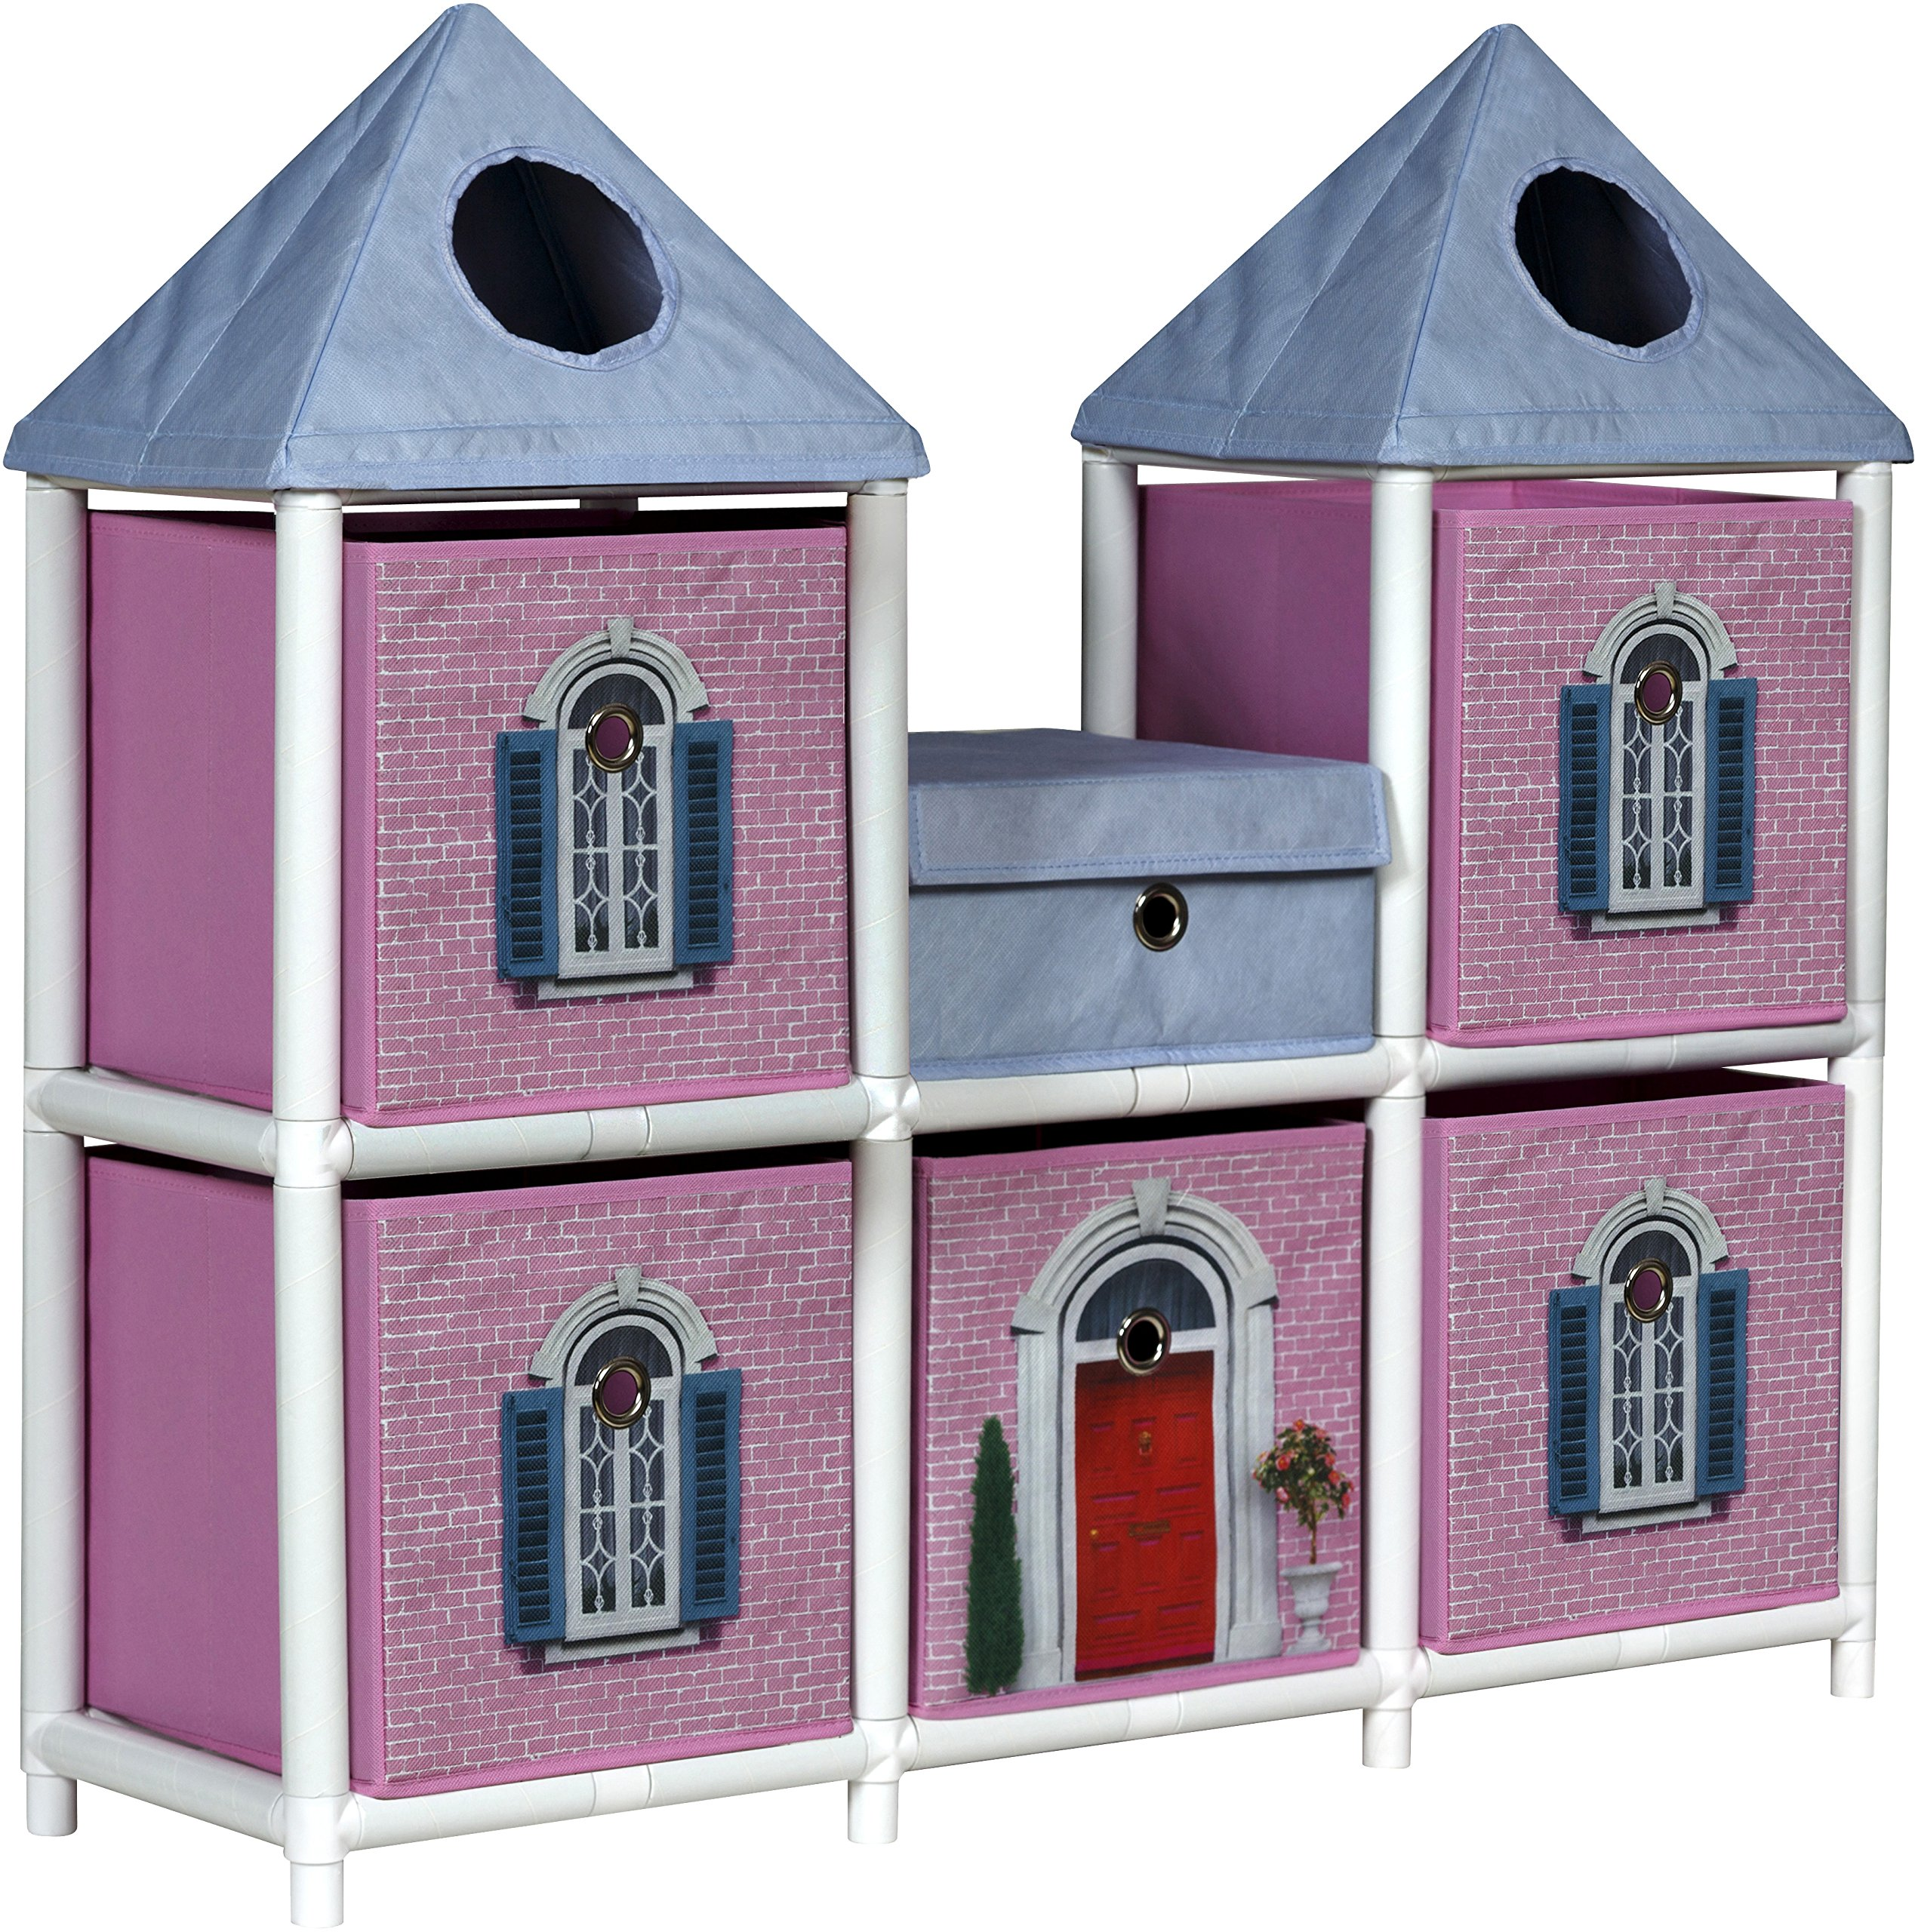 OneSpace 100% Recycled Paper Fantasy House Kids Storage Unit, Pink and Blue by OneSpace